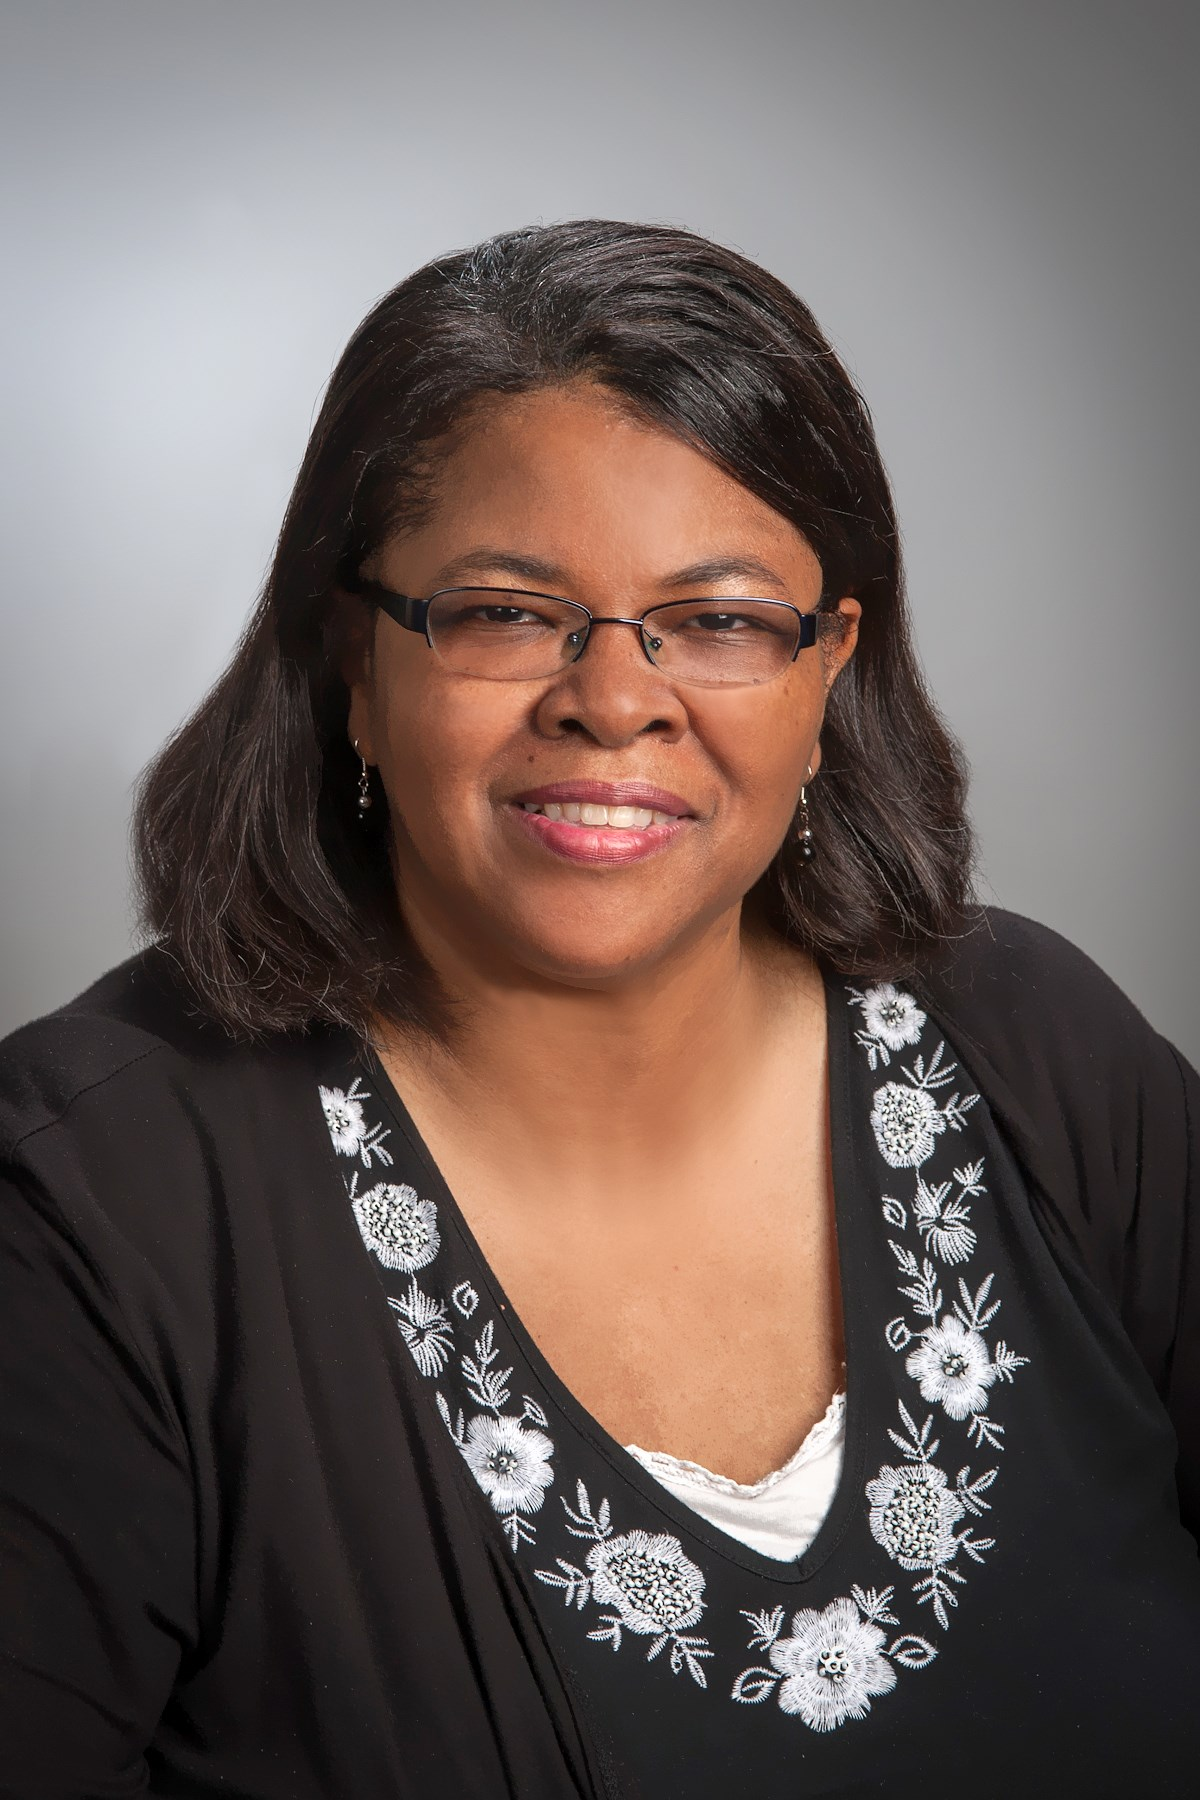 Rose Scruggs